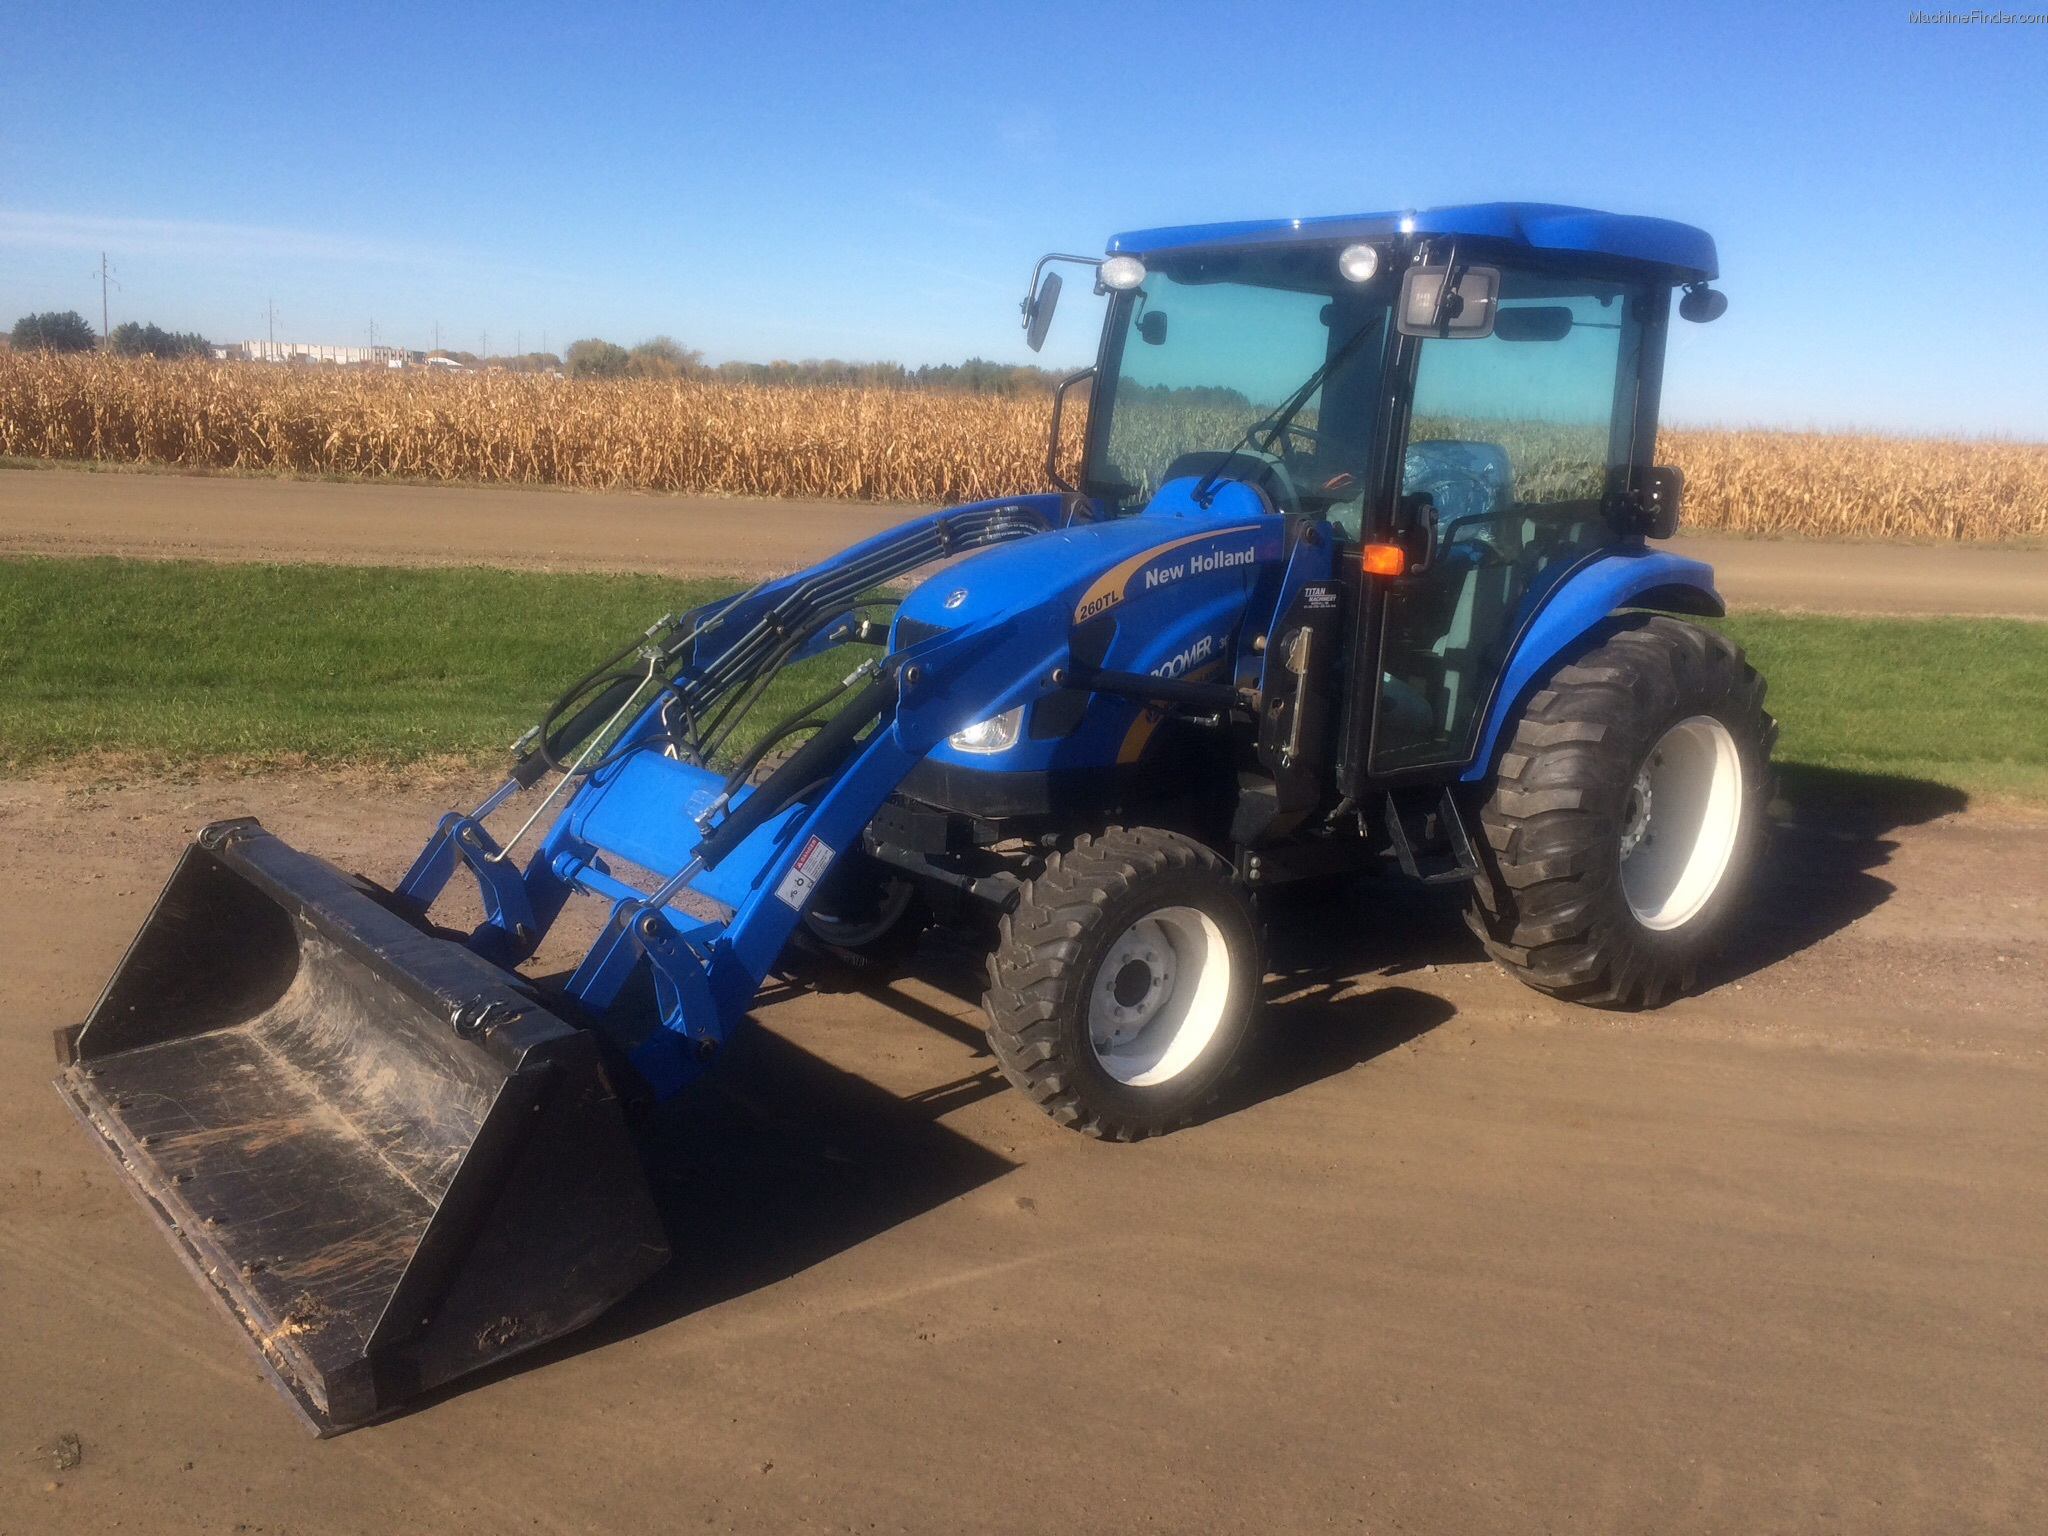 New Holland Boomer Compact Tractors : New holland boomer tractors compact hp